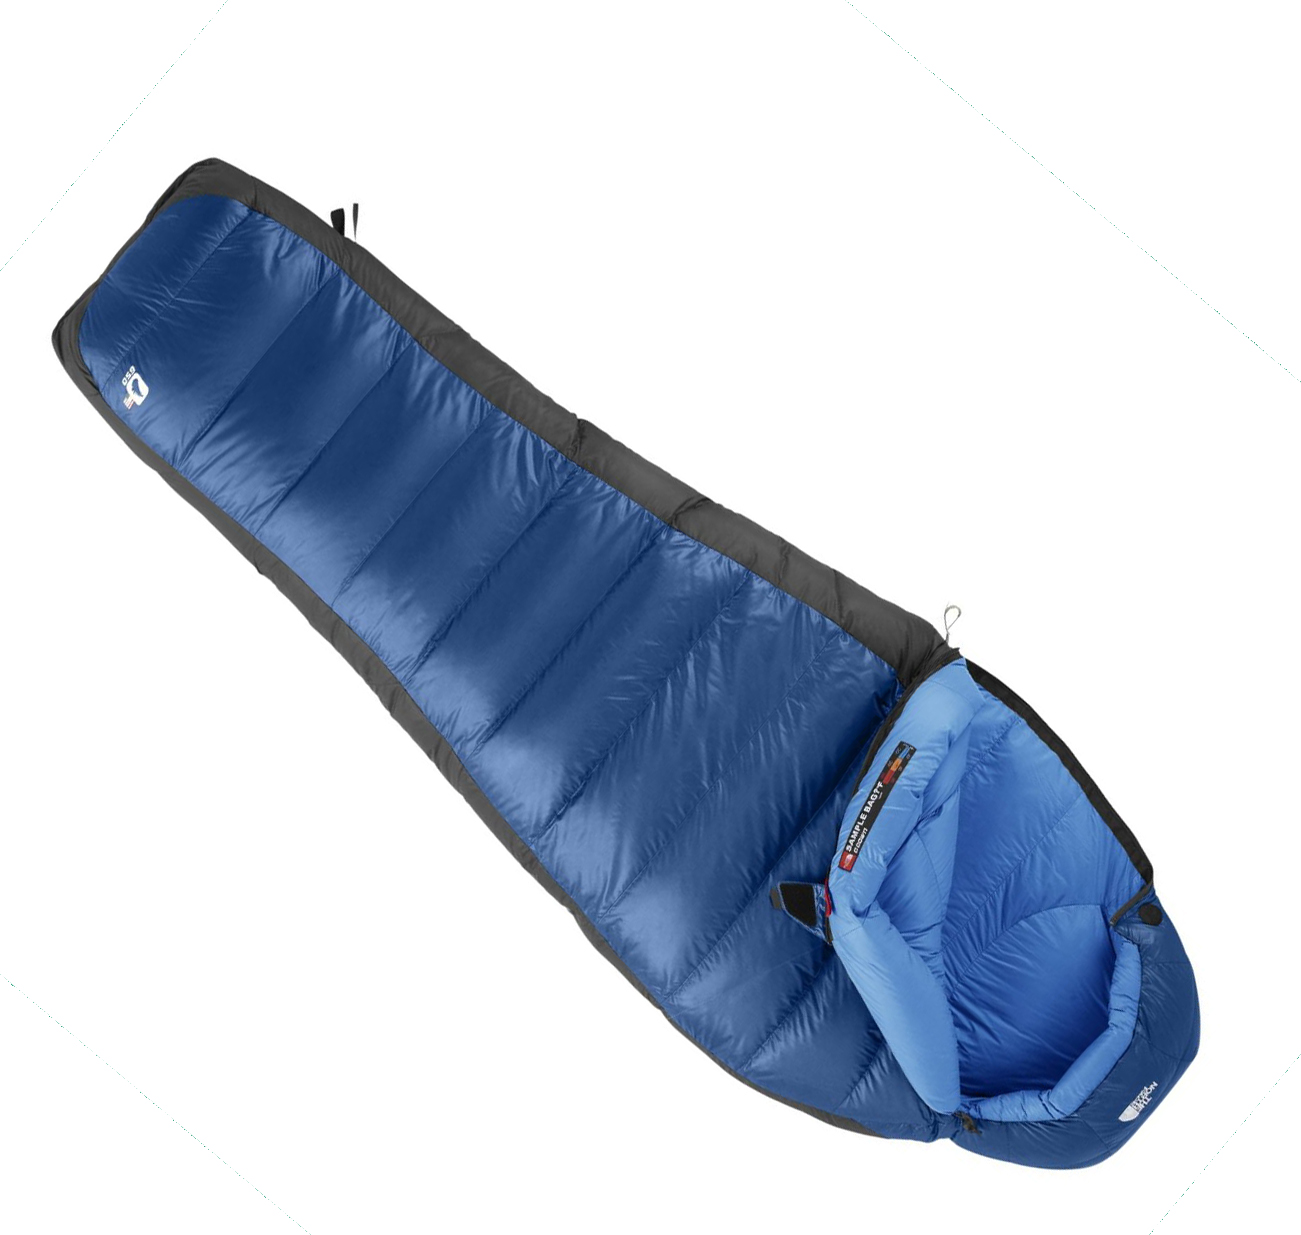 Bild Schlafsack Blue Kazoo blue ribbon The North Face2